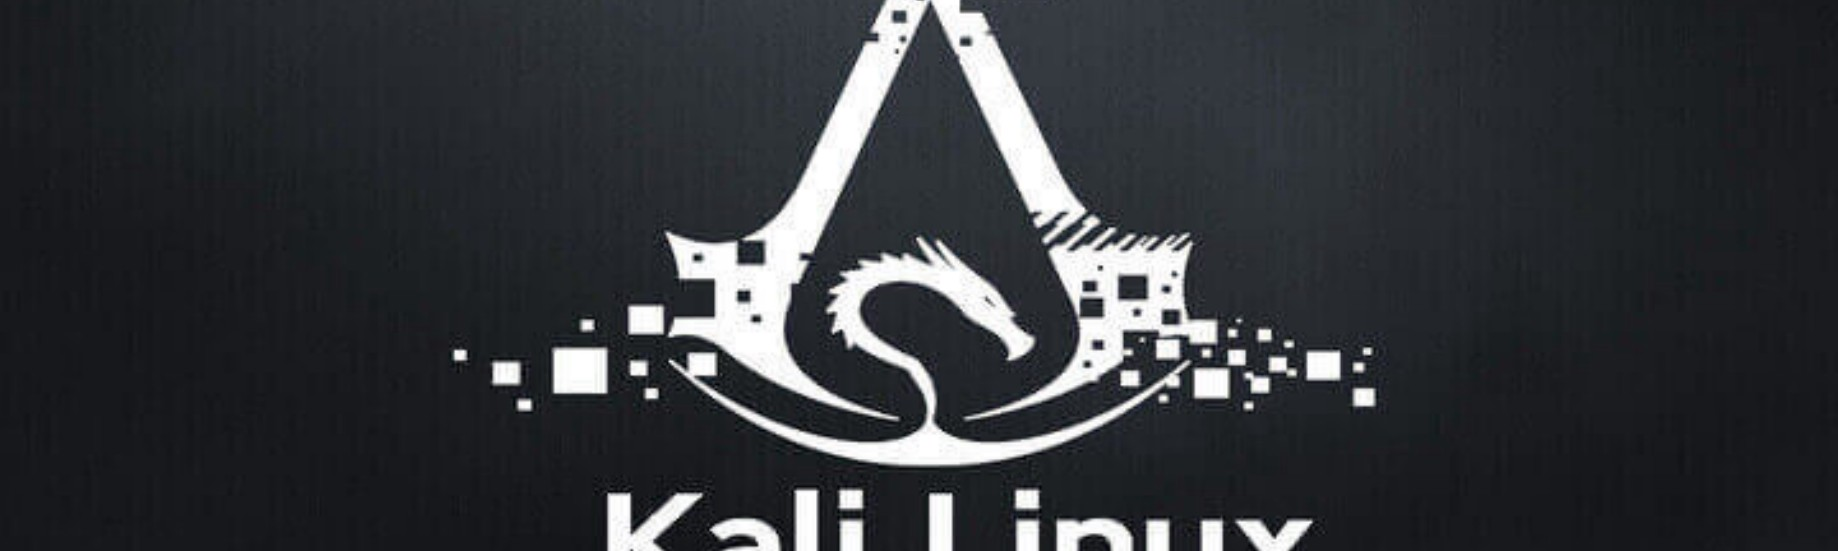 Top Tutorials To Learn Kali Linux For Beginners - Quick Code